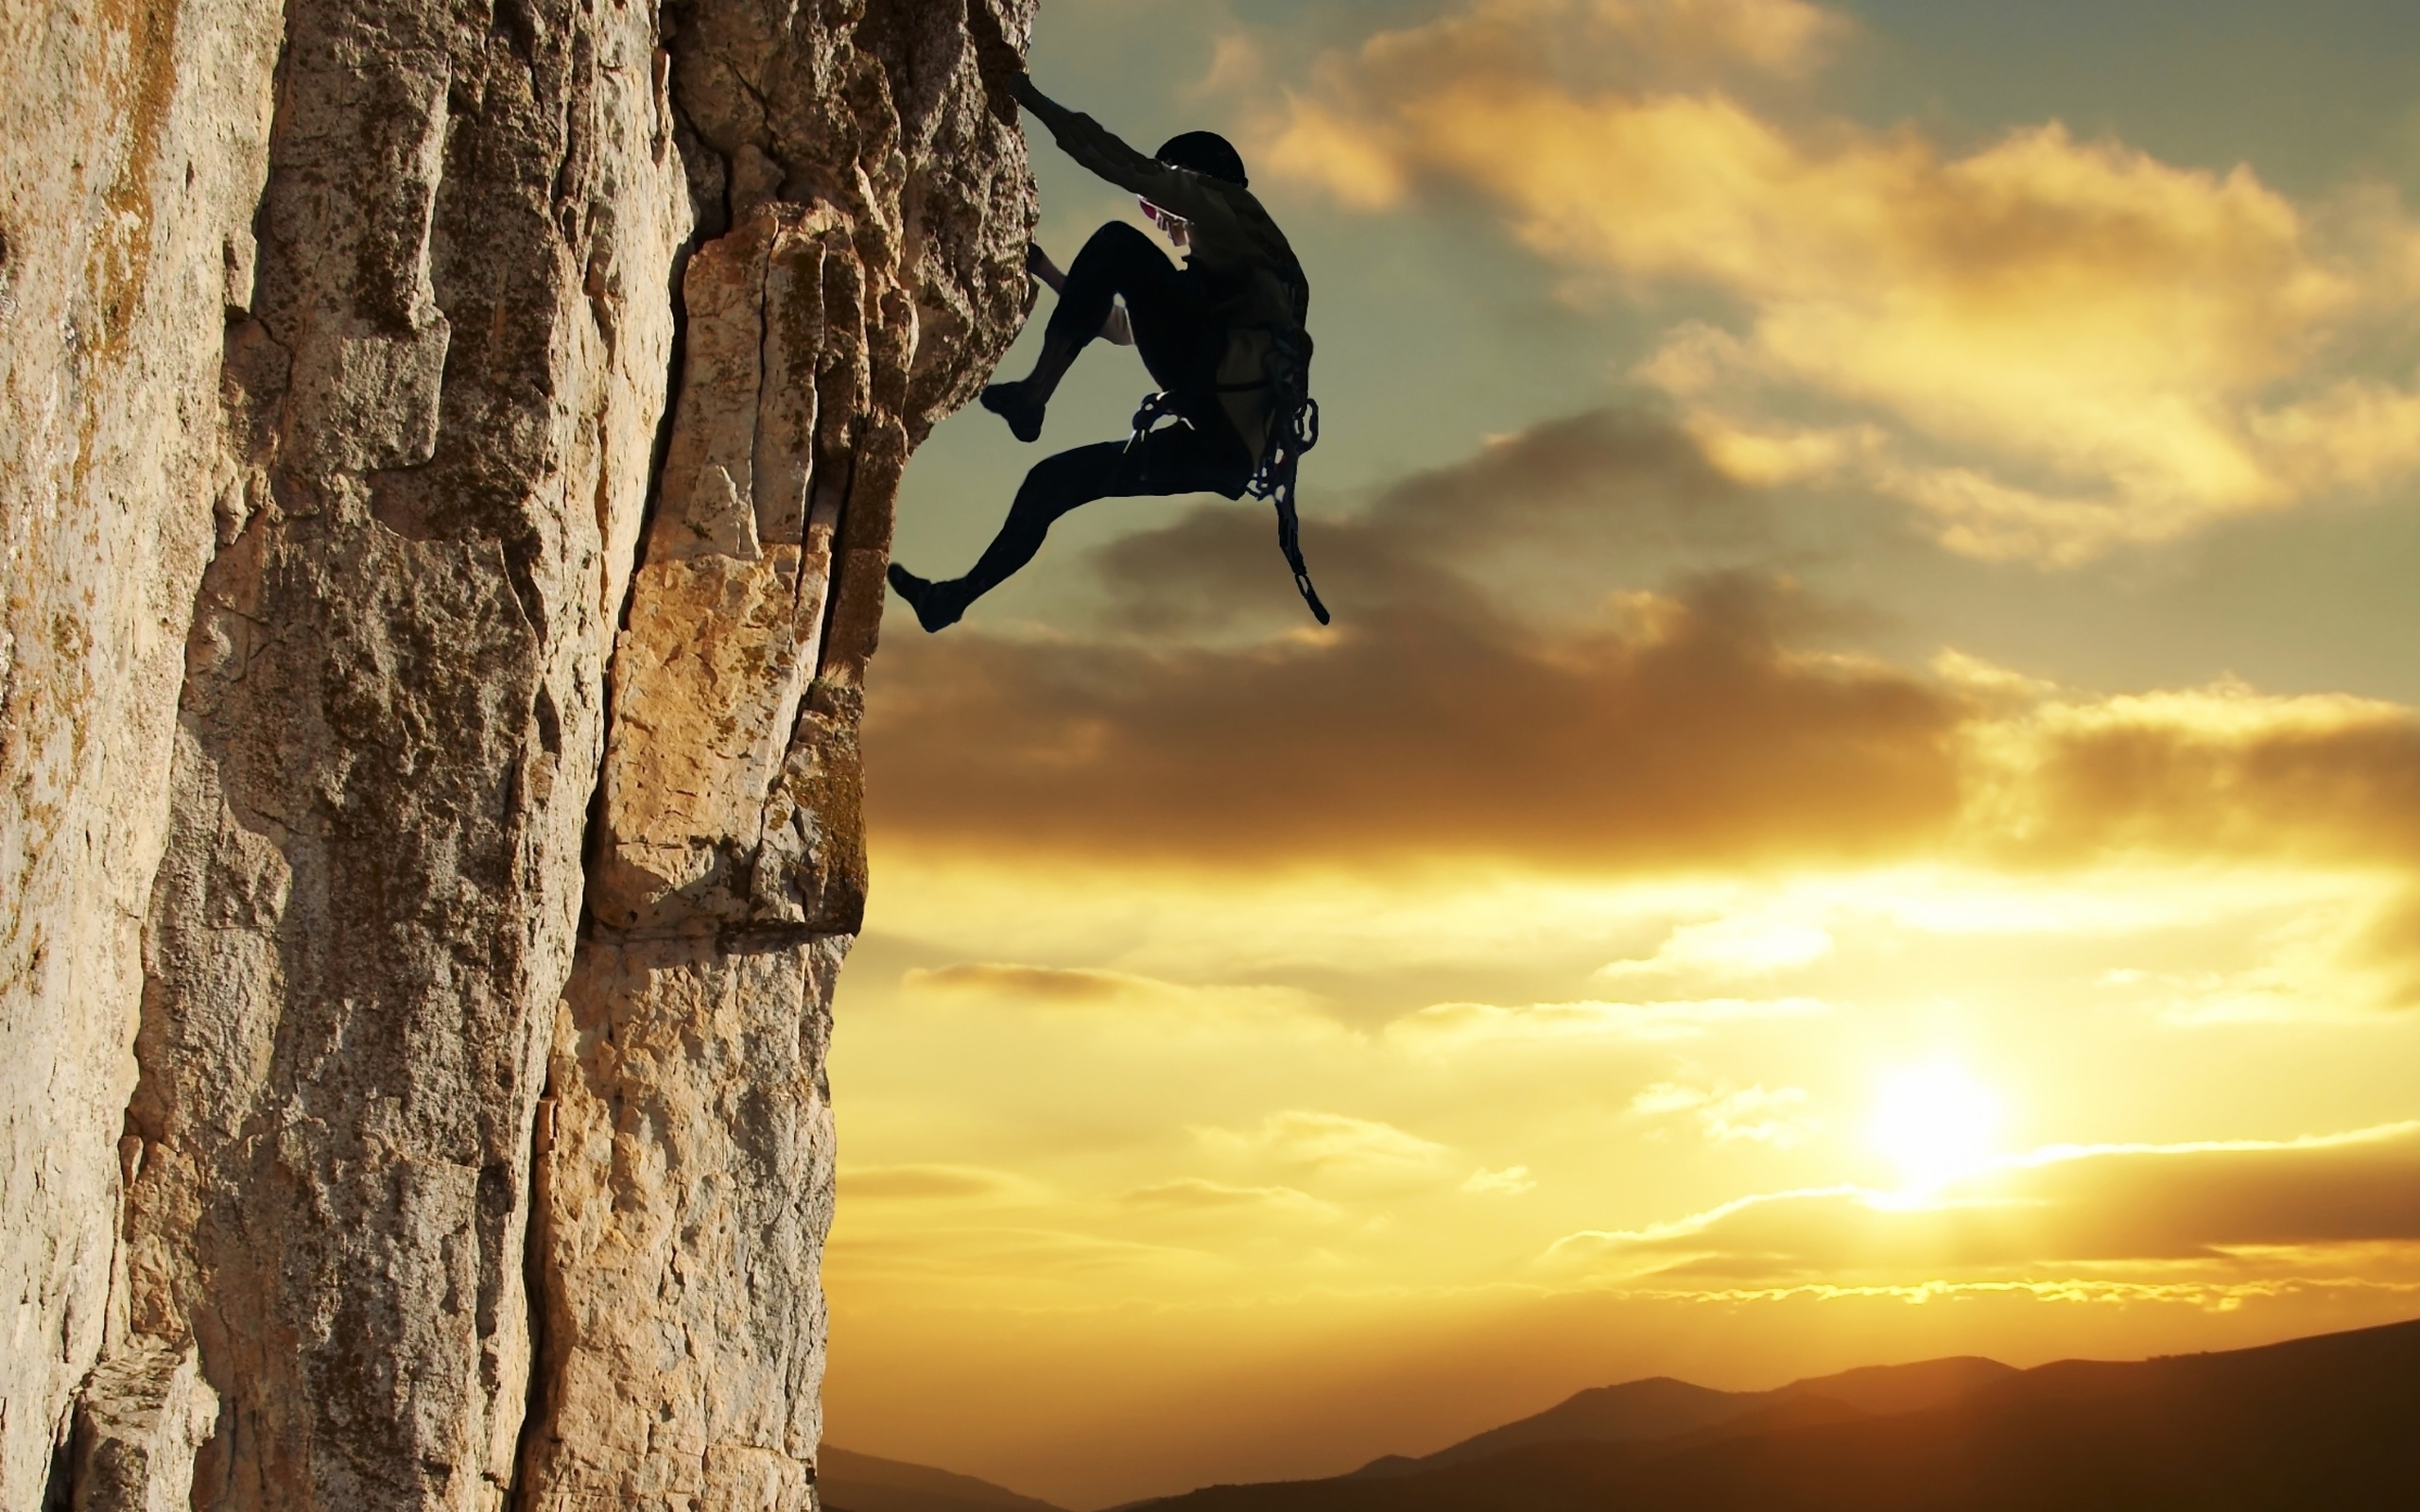 Rock Climbing HD Wallpaper